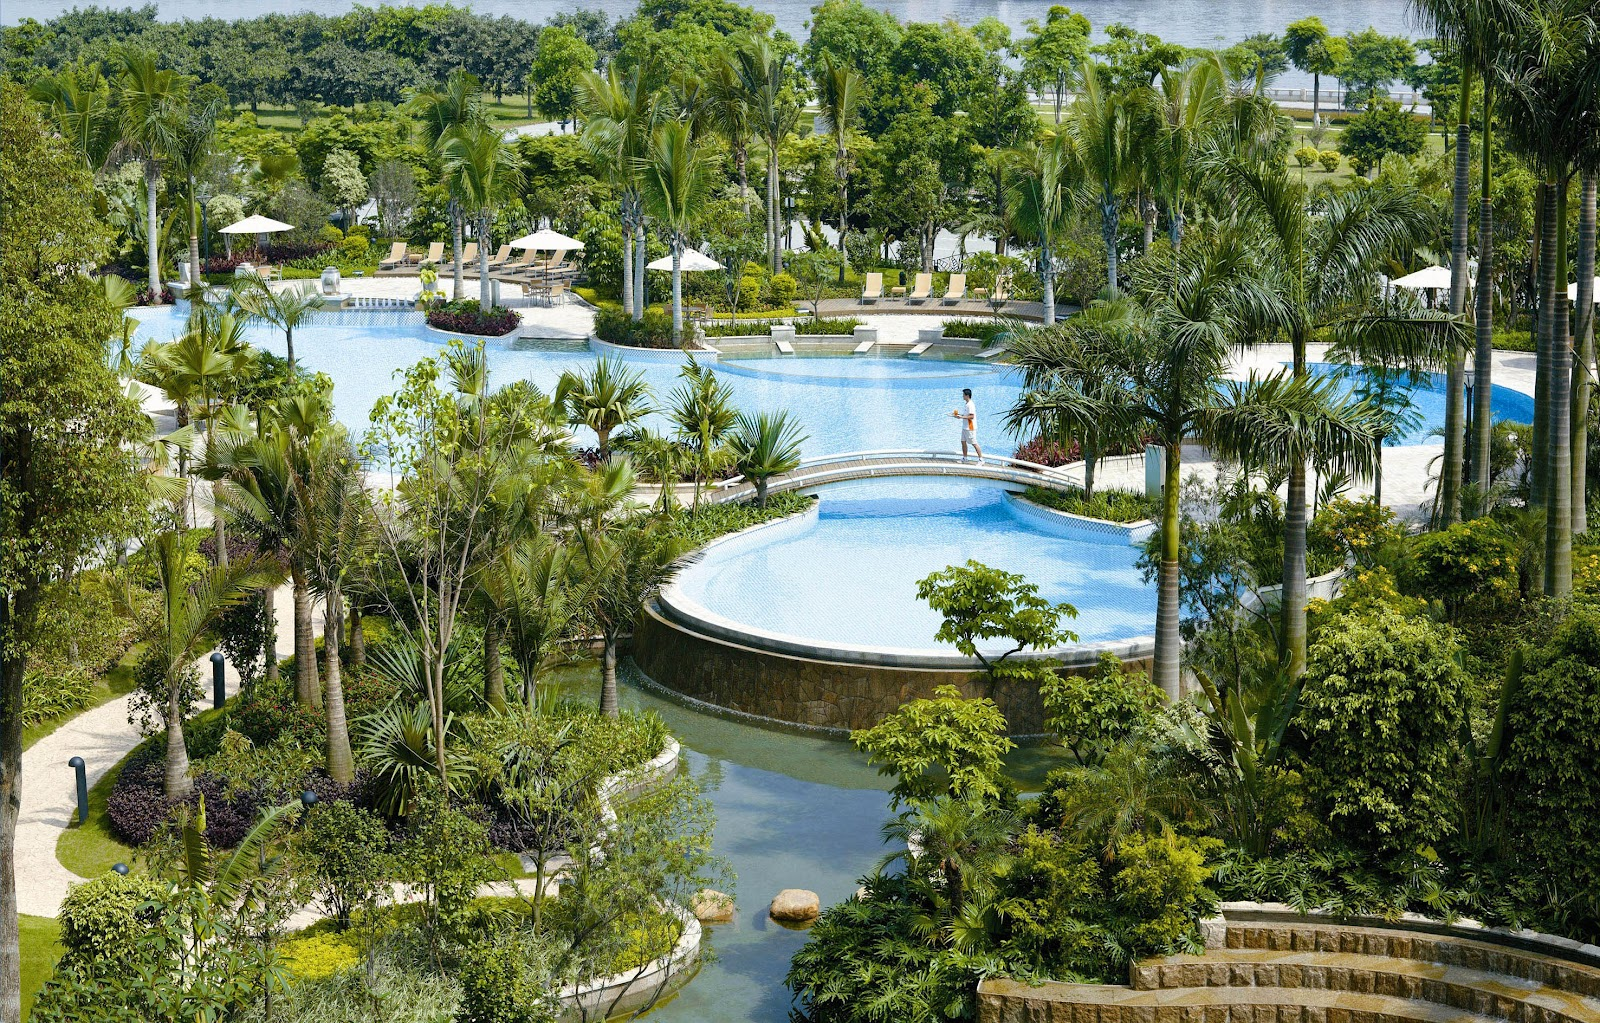 Restaurant review bangkok mostly all around the - Hotels with saltwater swimming pools ...